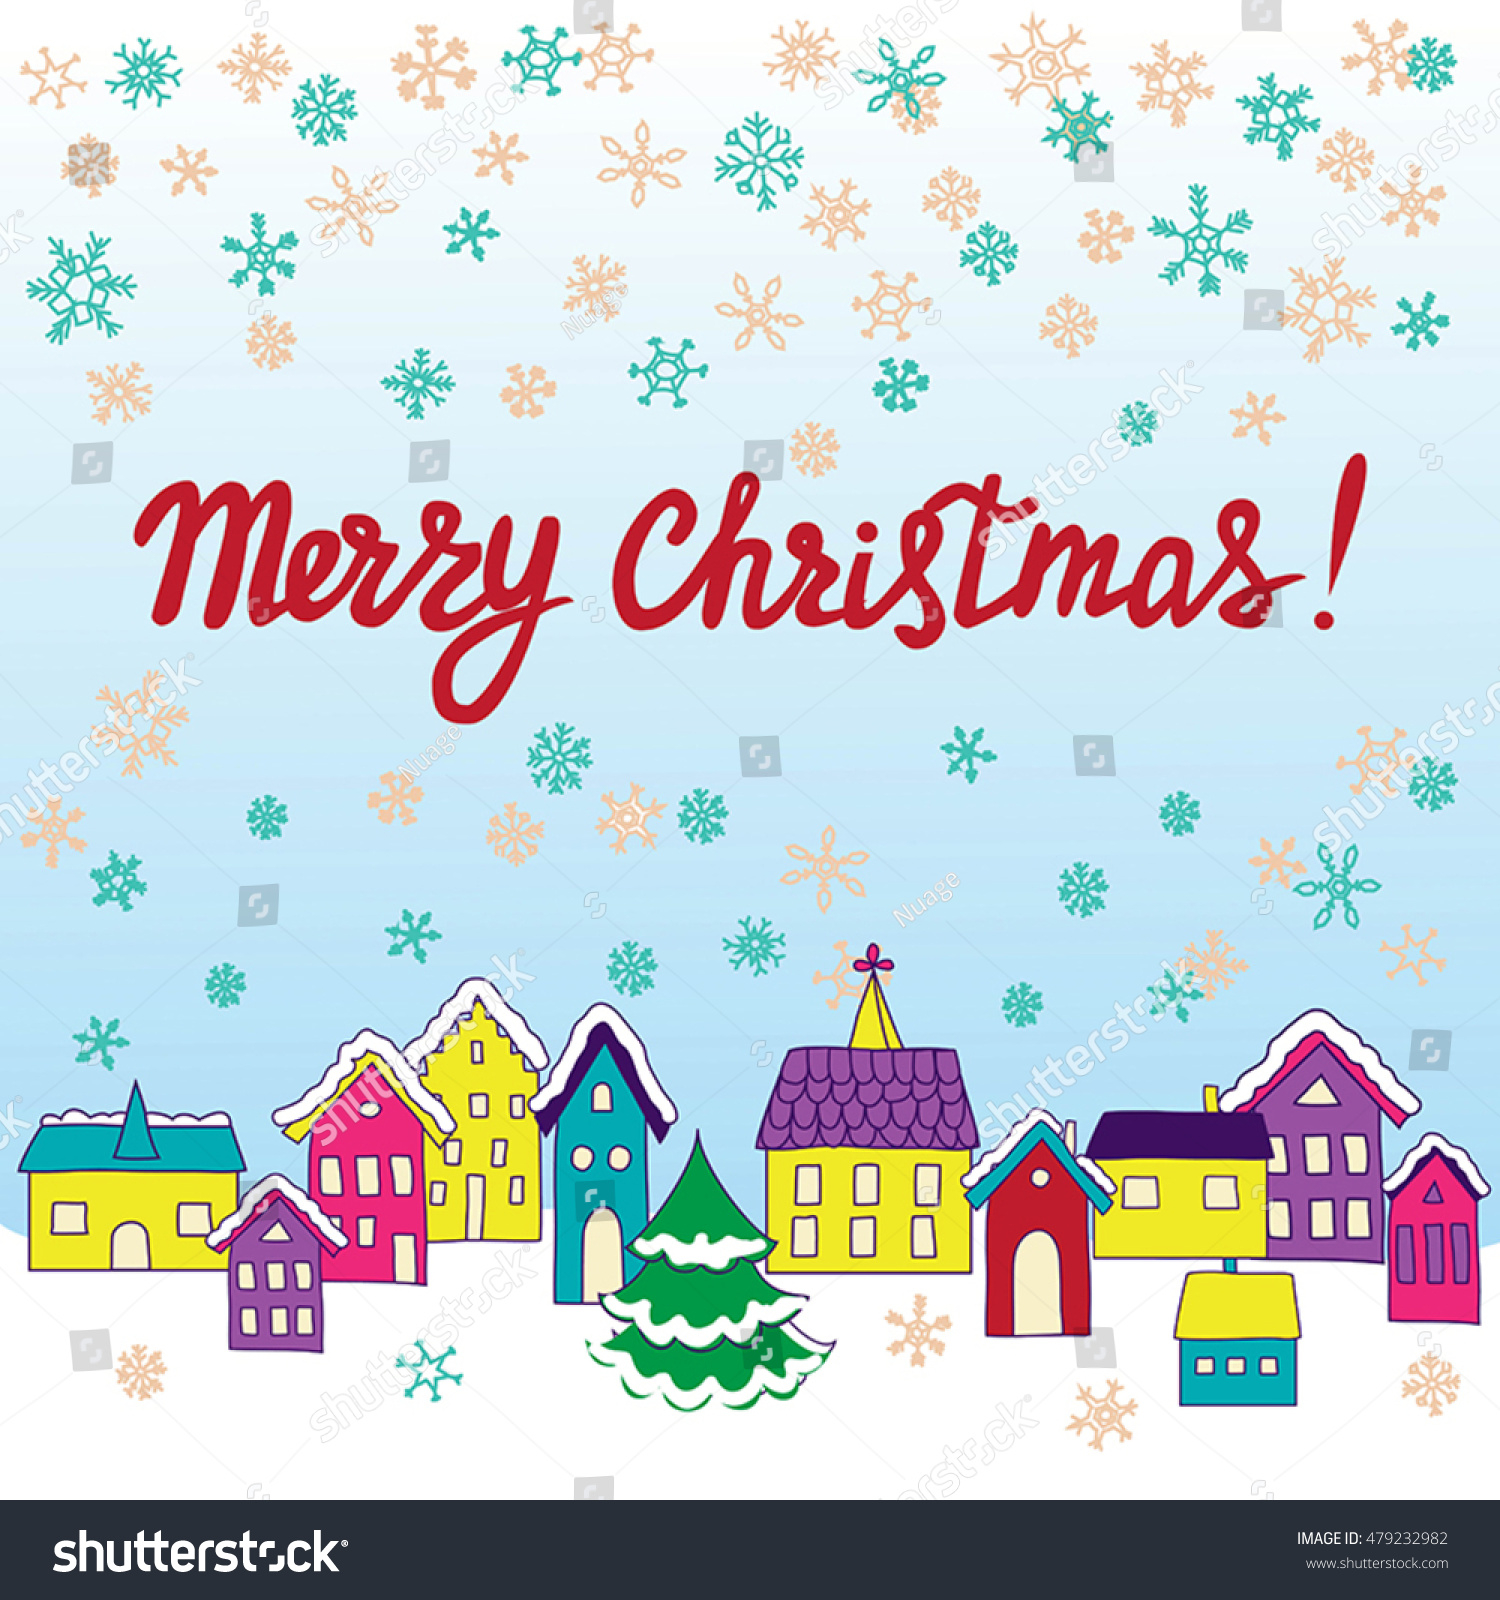 Christmas Letter Background Template - Vector Template Christmas Cards Invitations Backgrounds Stock Vector